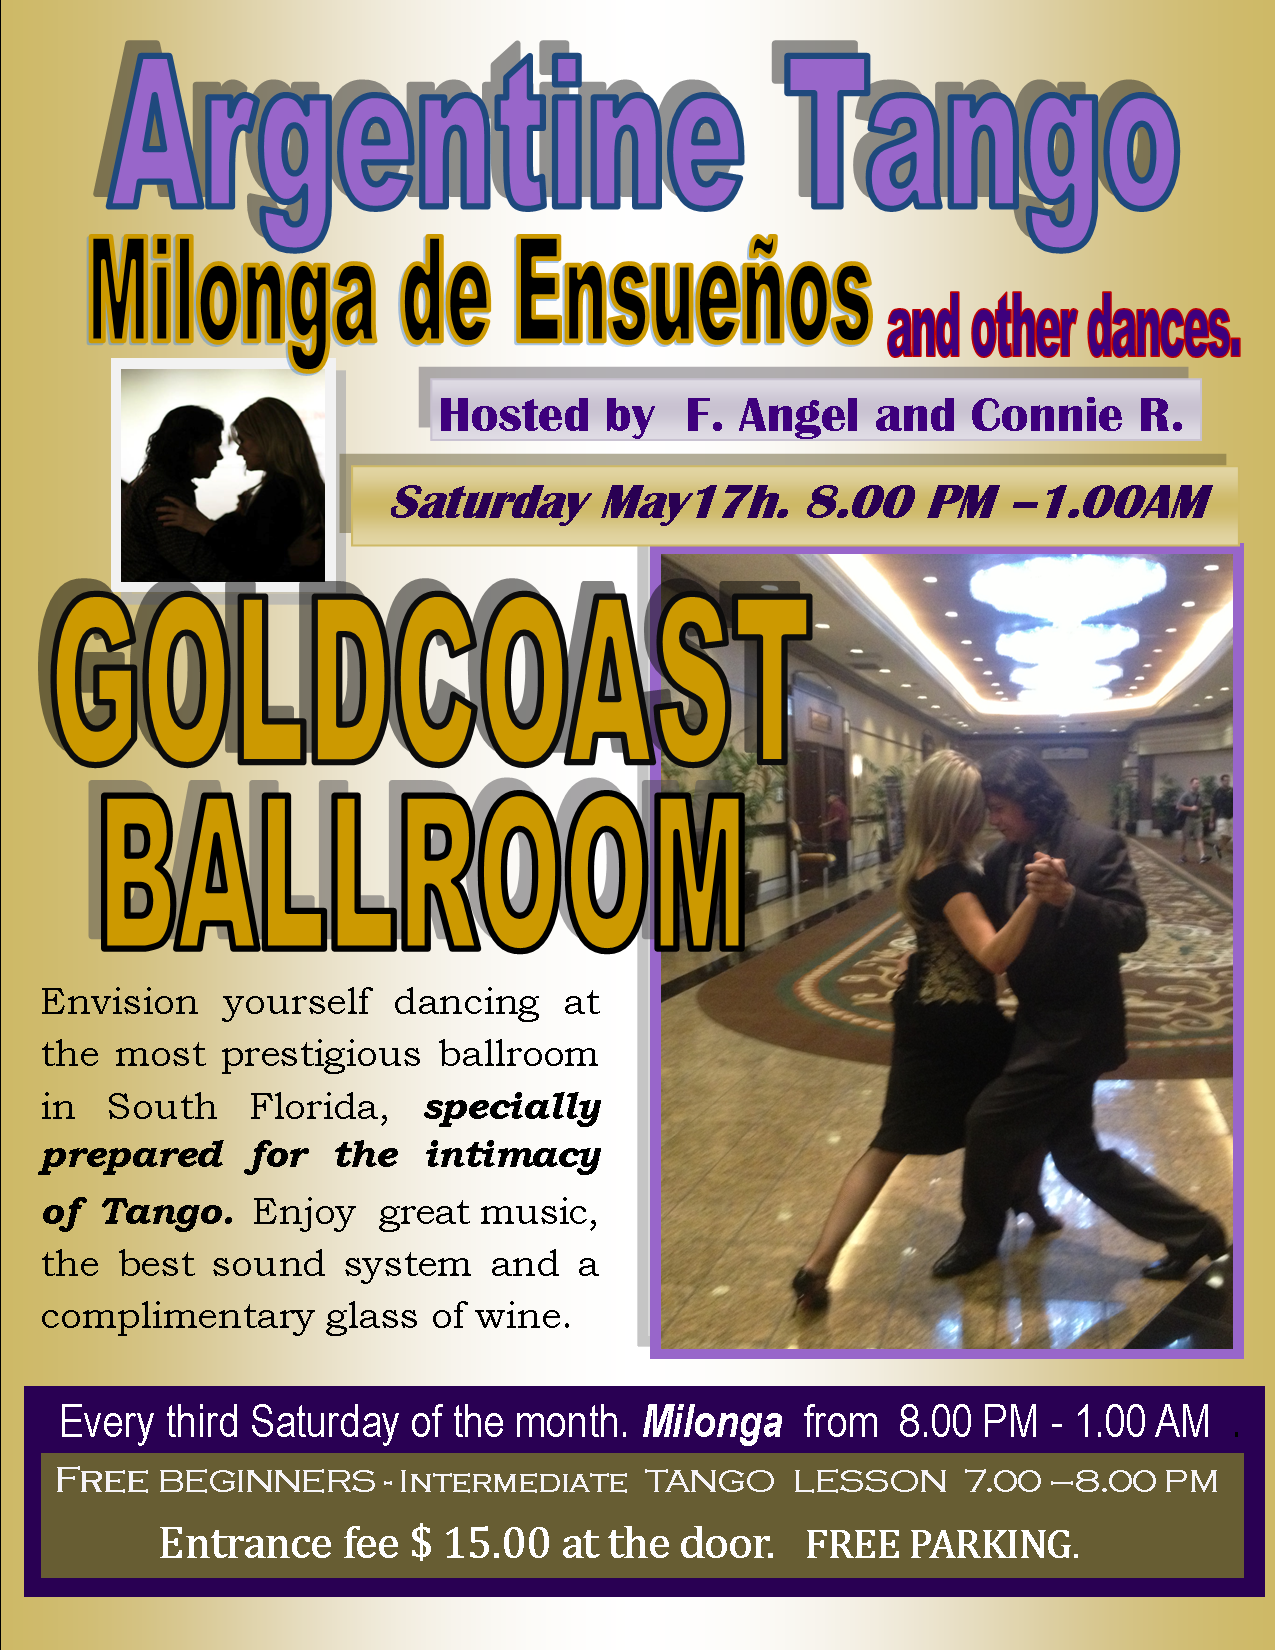 Milonga de Ensuenos May 17, 2014 at Goldcoast Ballroom